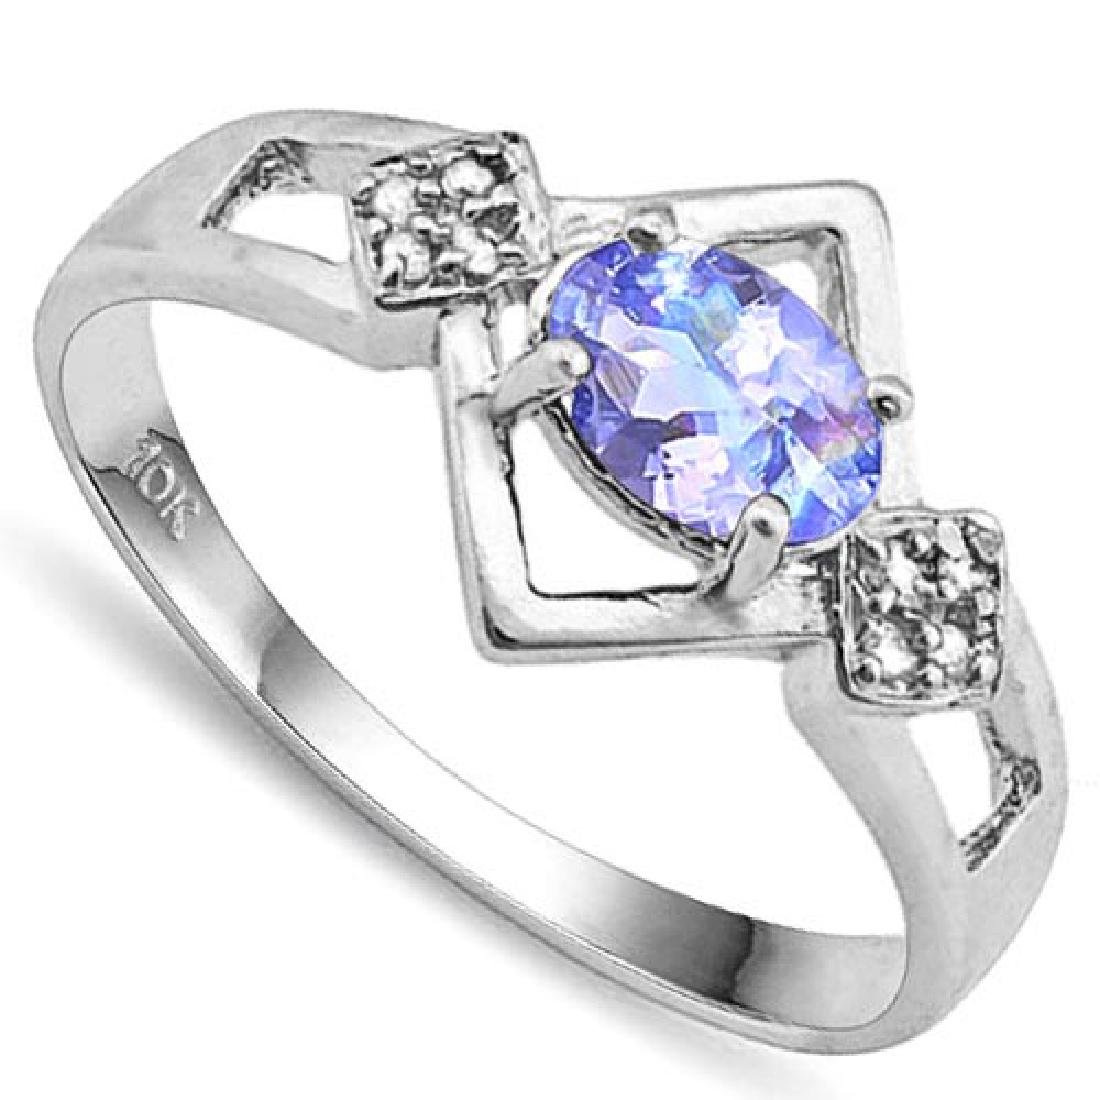 0.7 CTW GENUINE TANZANITE & GENUINE DIAMOND (8 PCS) 10K